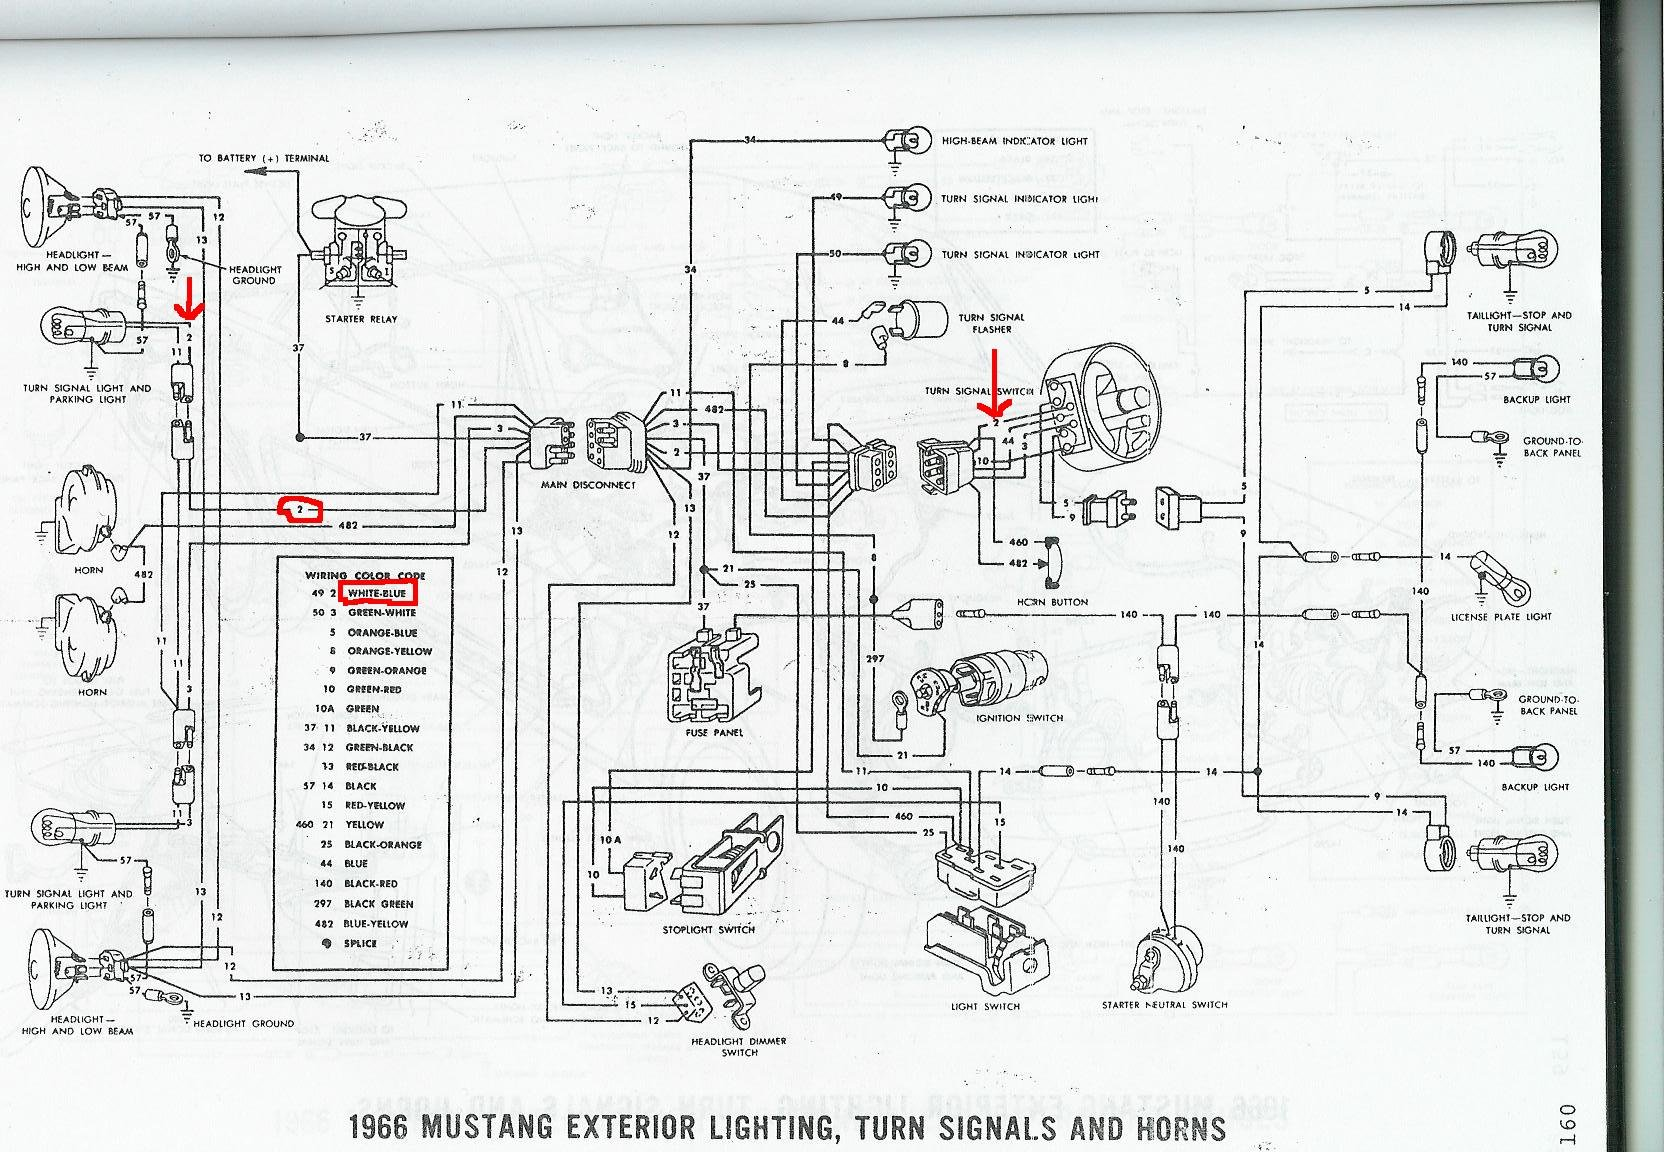 1966 mustang dash wiring diagram 1966 mustang park lights please tell me how they are supposed to click image for larger